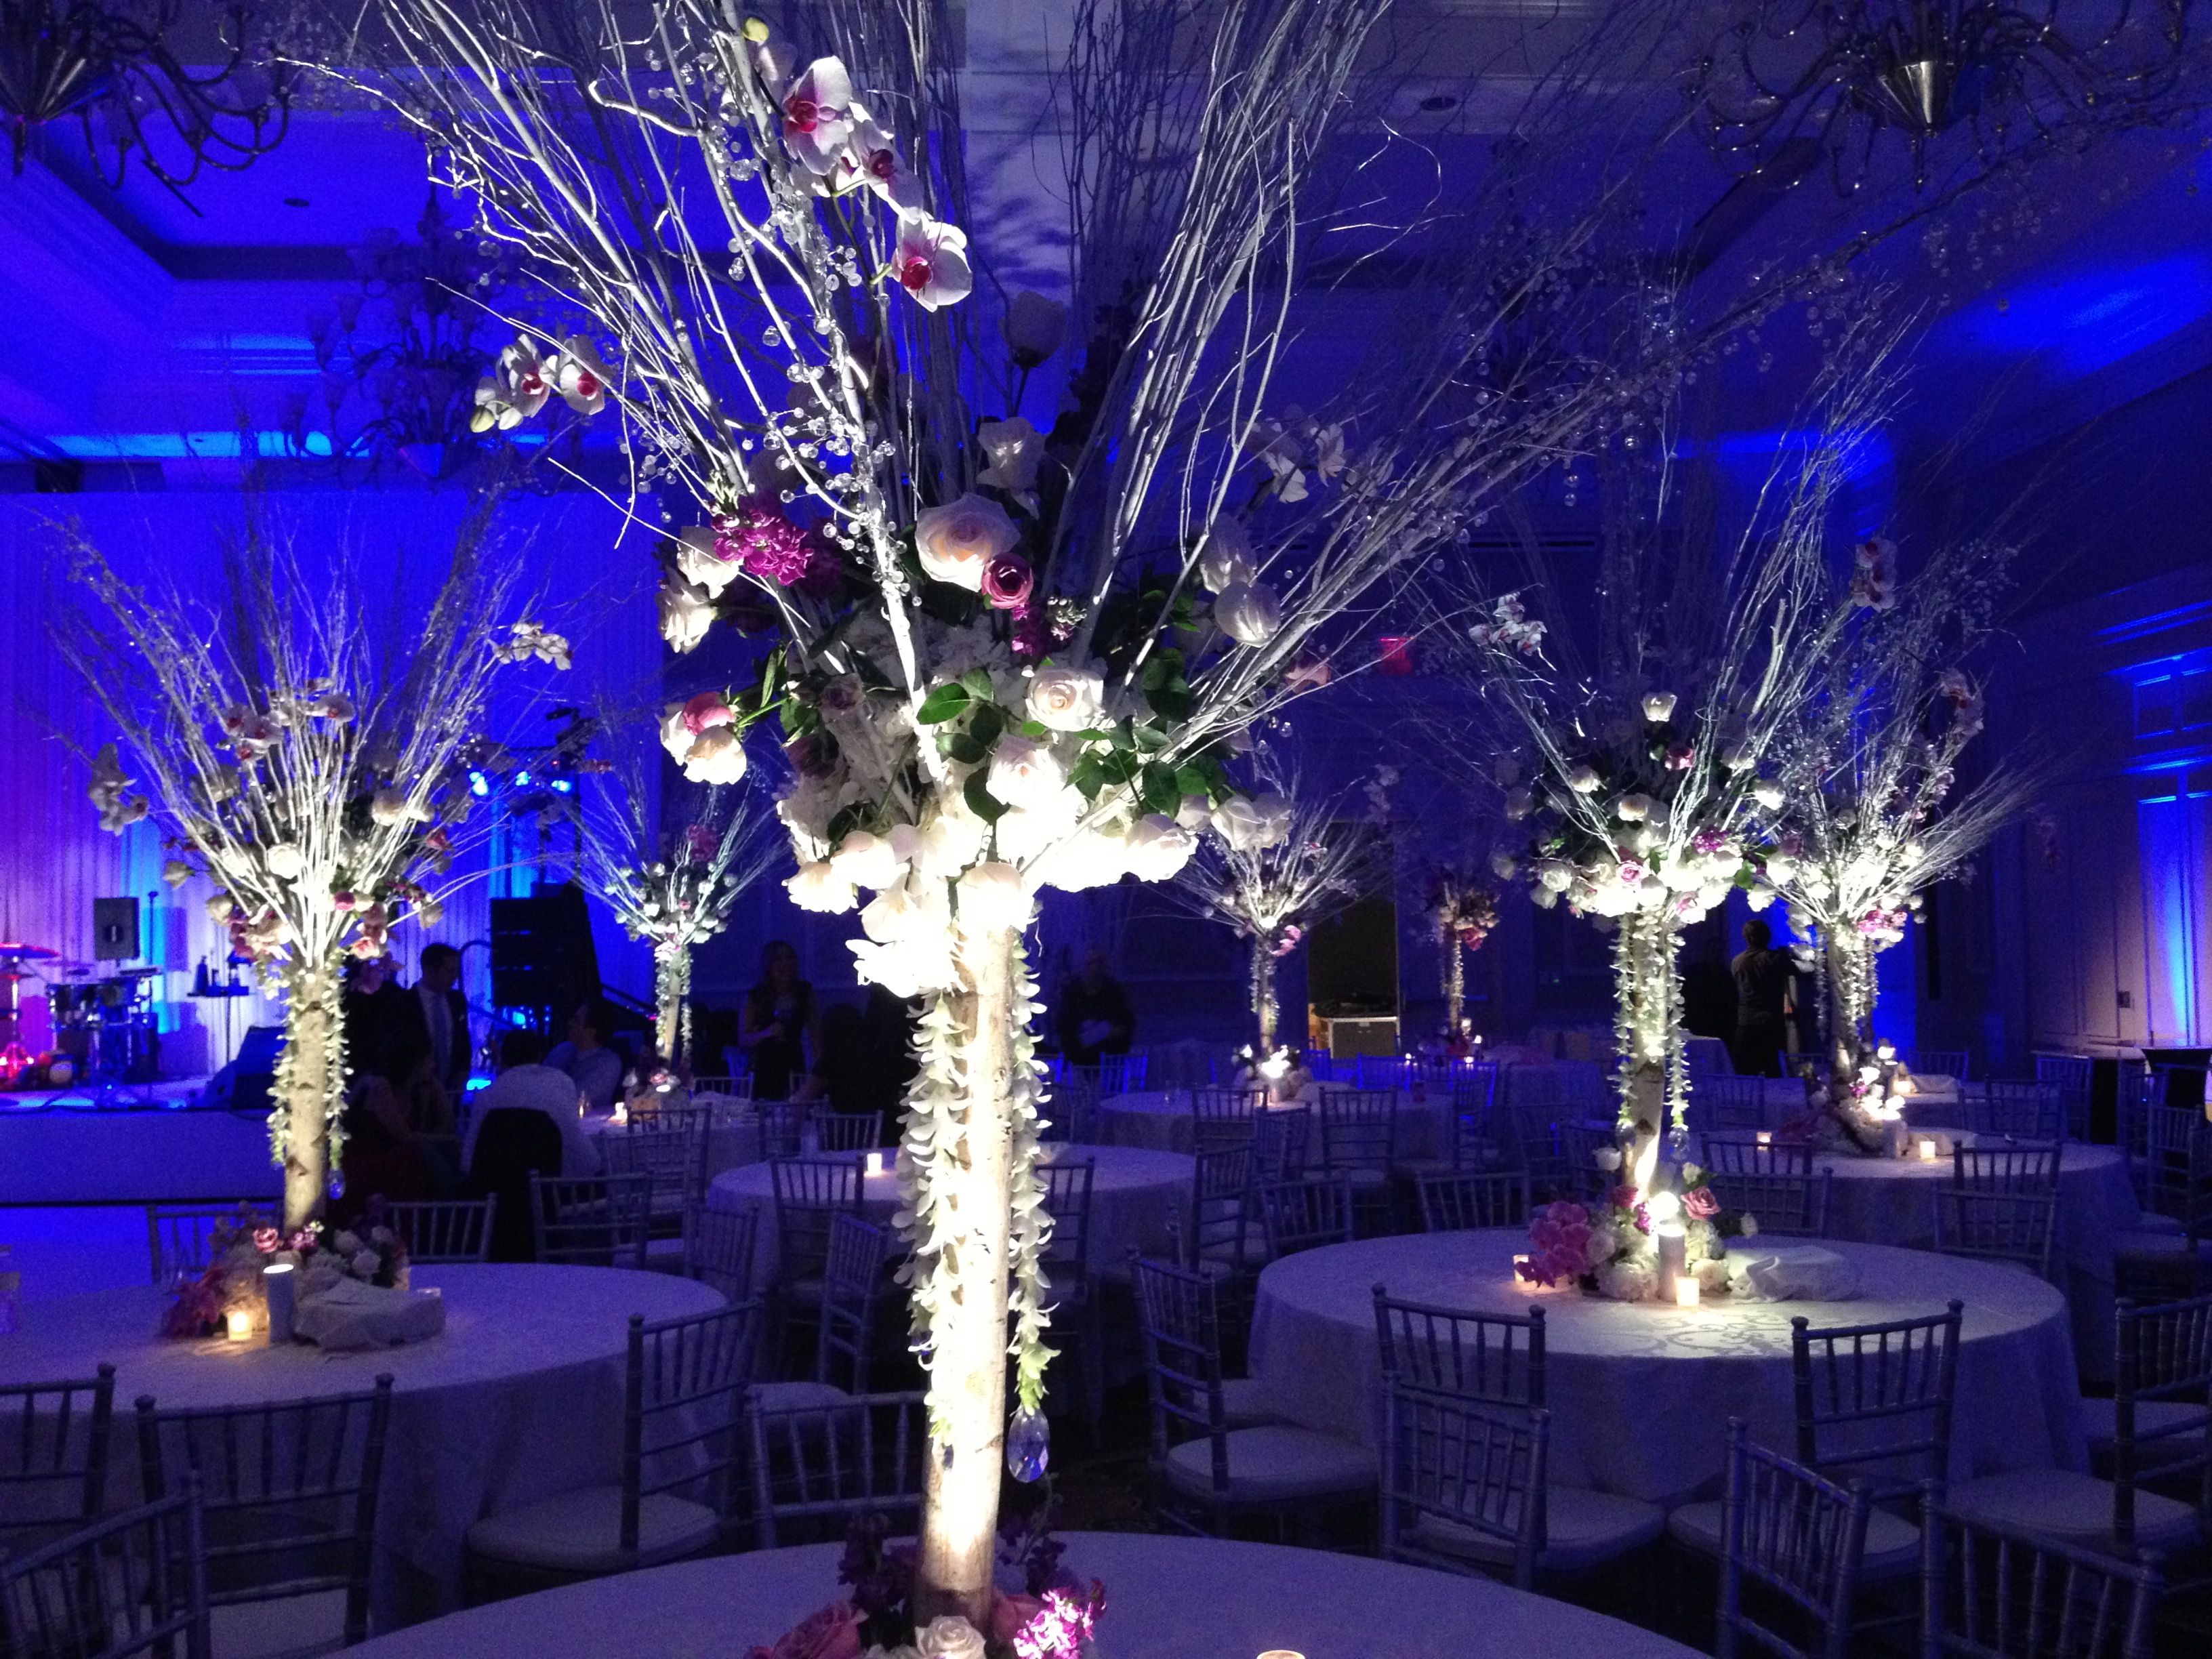 White Birch Tree Trunk Centerpieces With White Orchid And Crystal Garlands Www Rainingroses Biz White Birch Trees Crystal Garland Tree Centerpieces